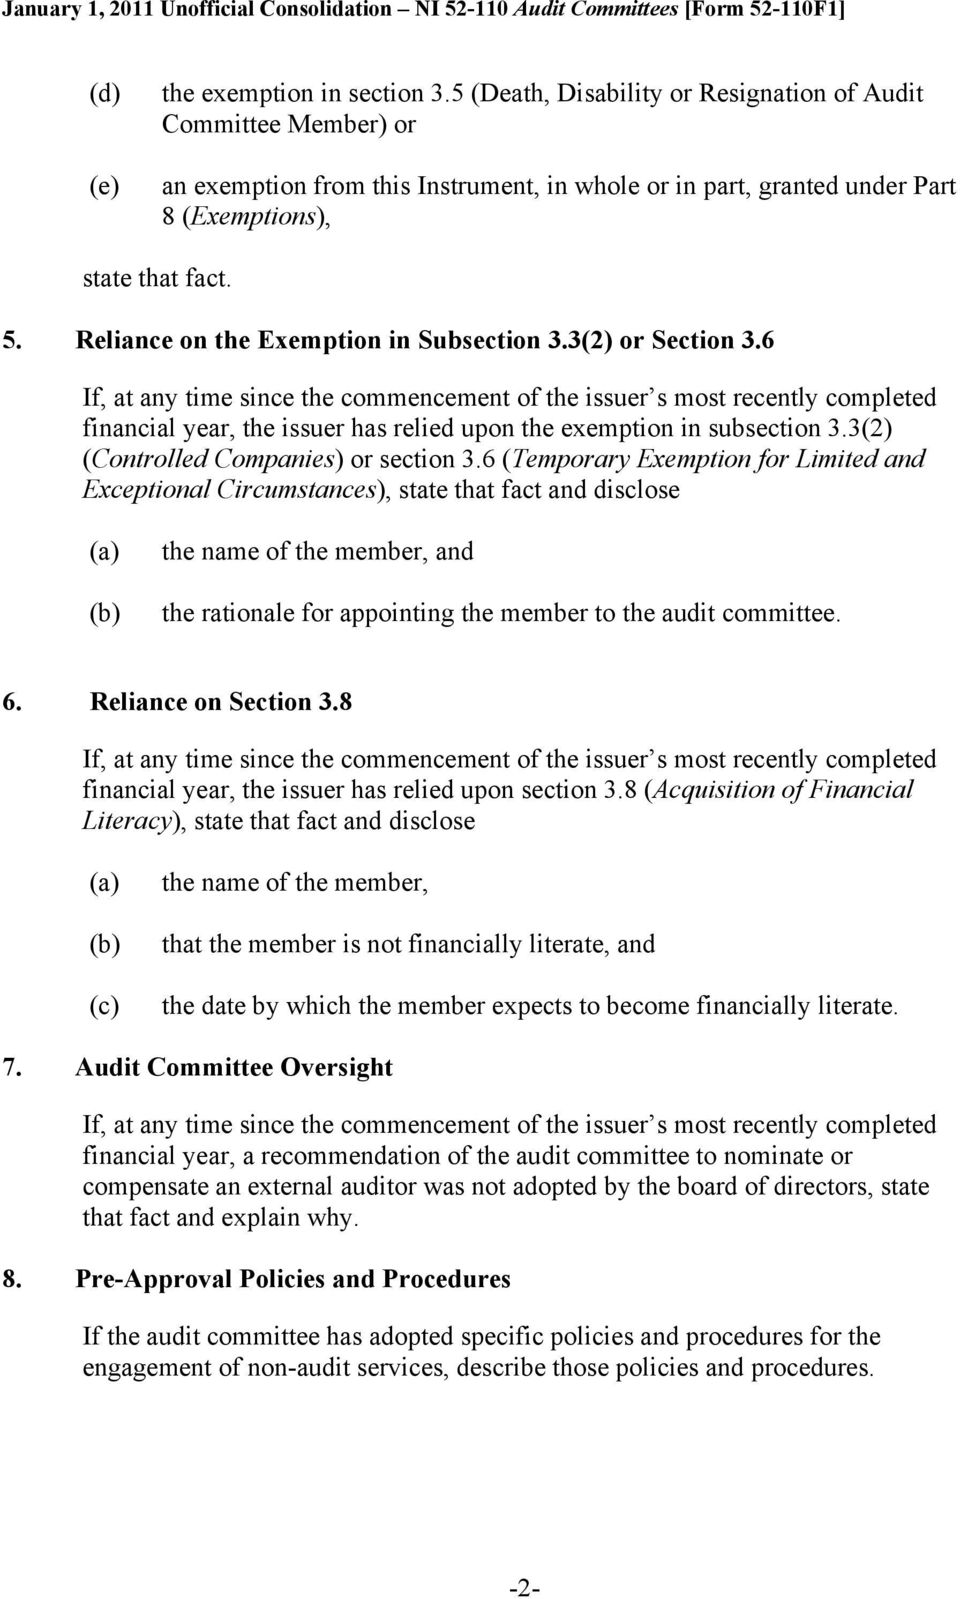 Reliance on the Exemption in Subsection 3.3(2) or Section 3.